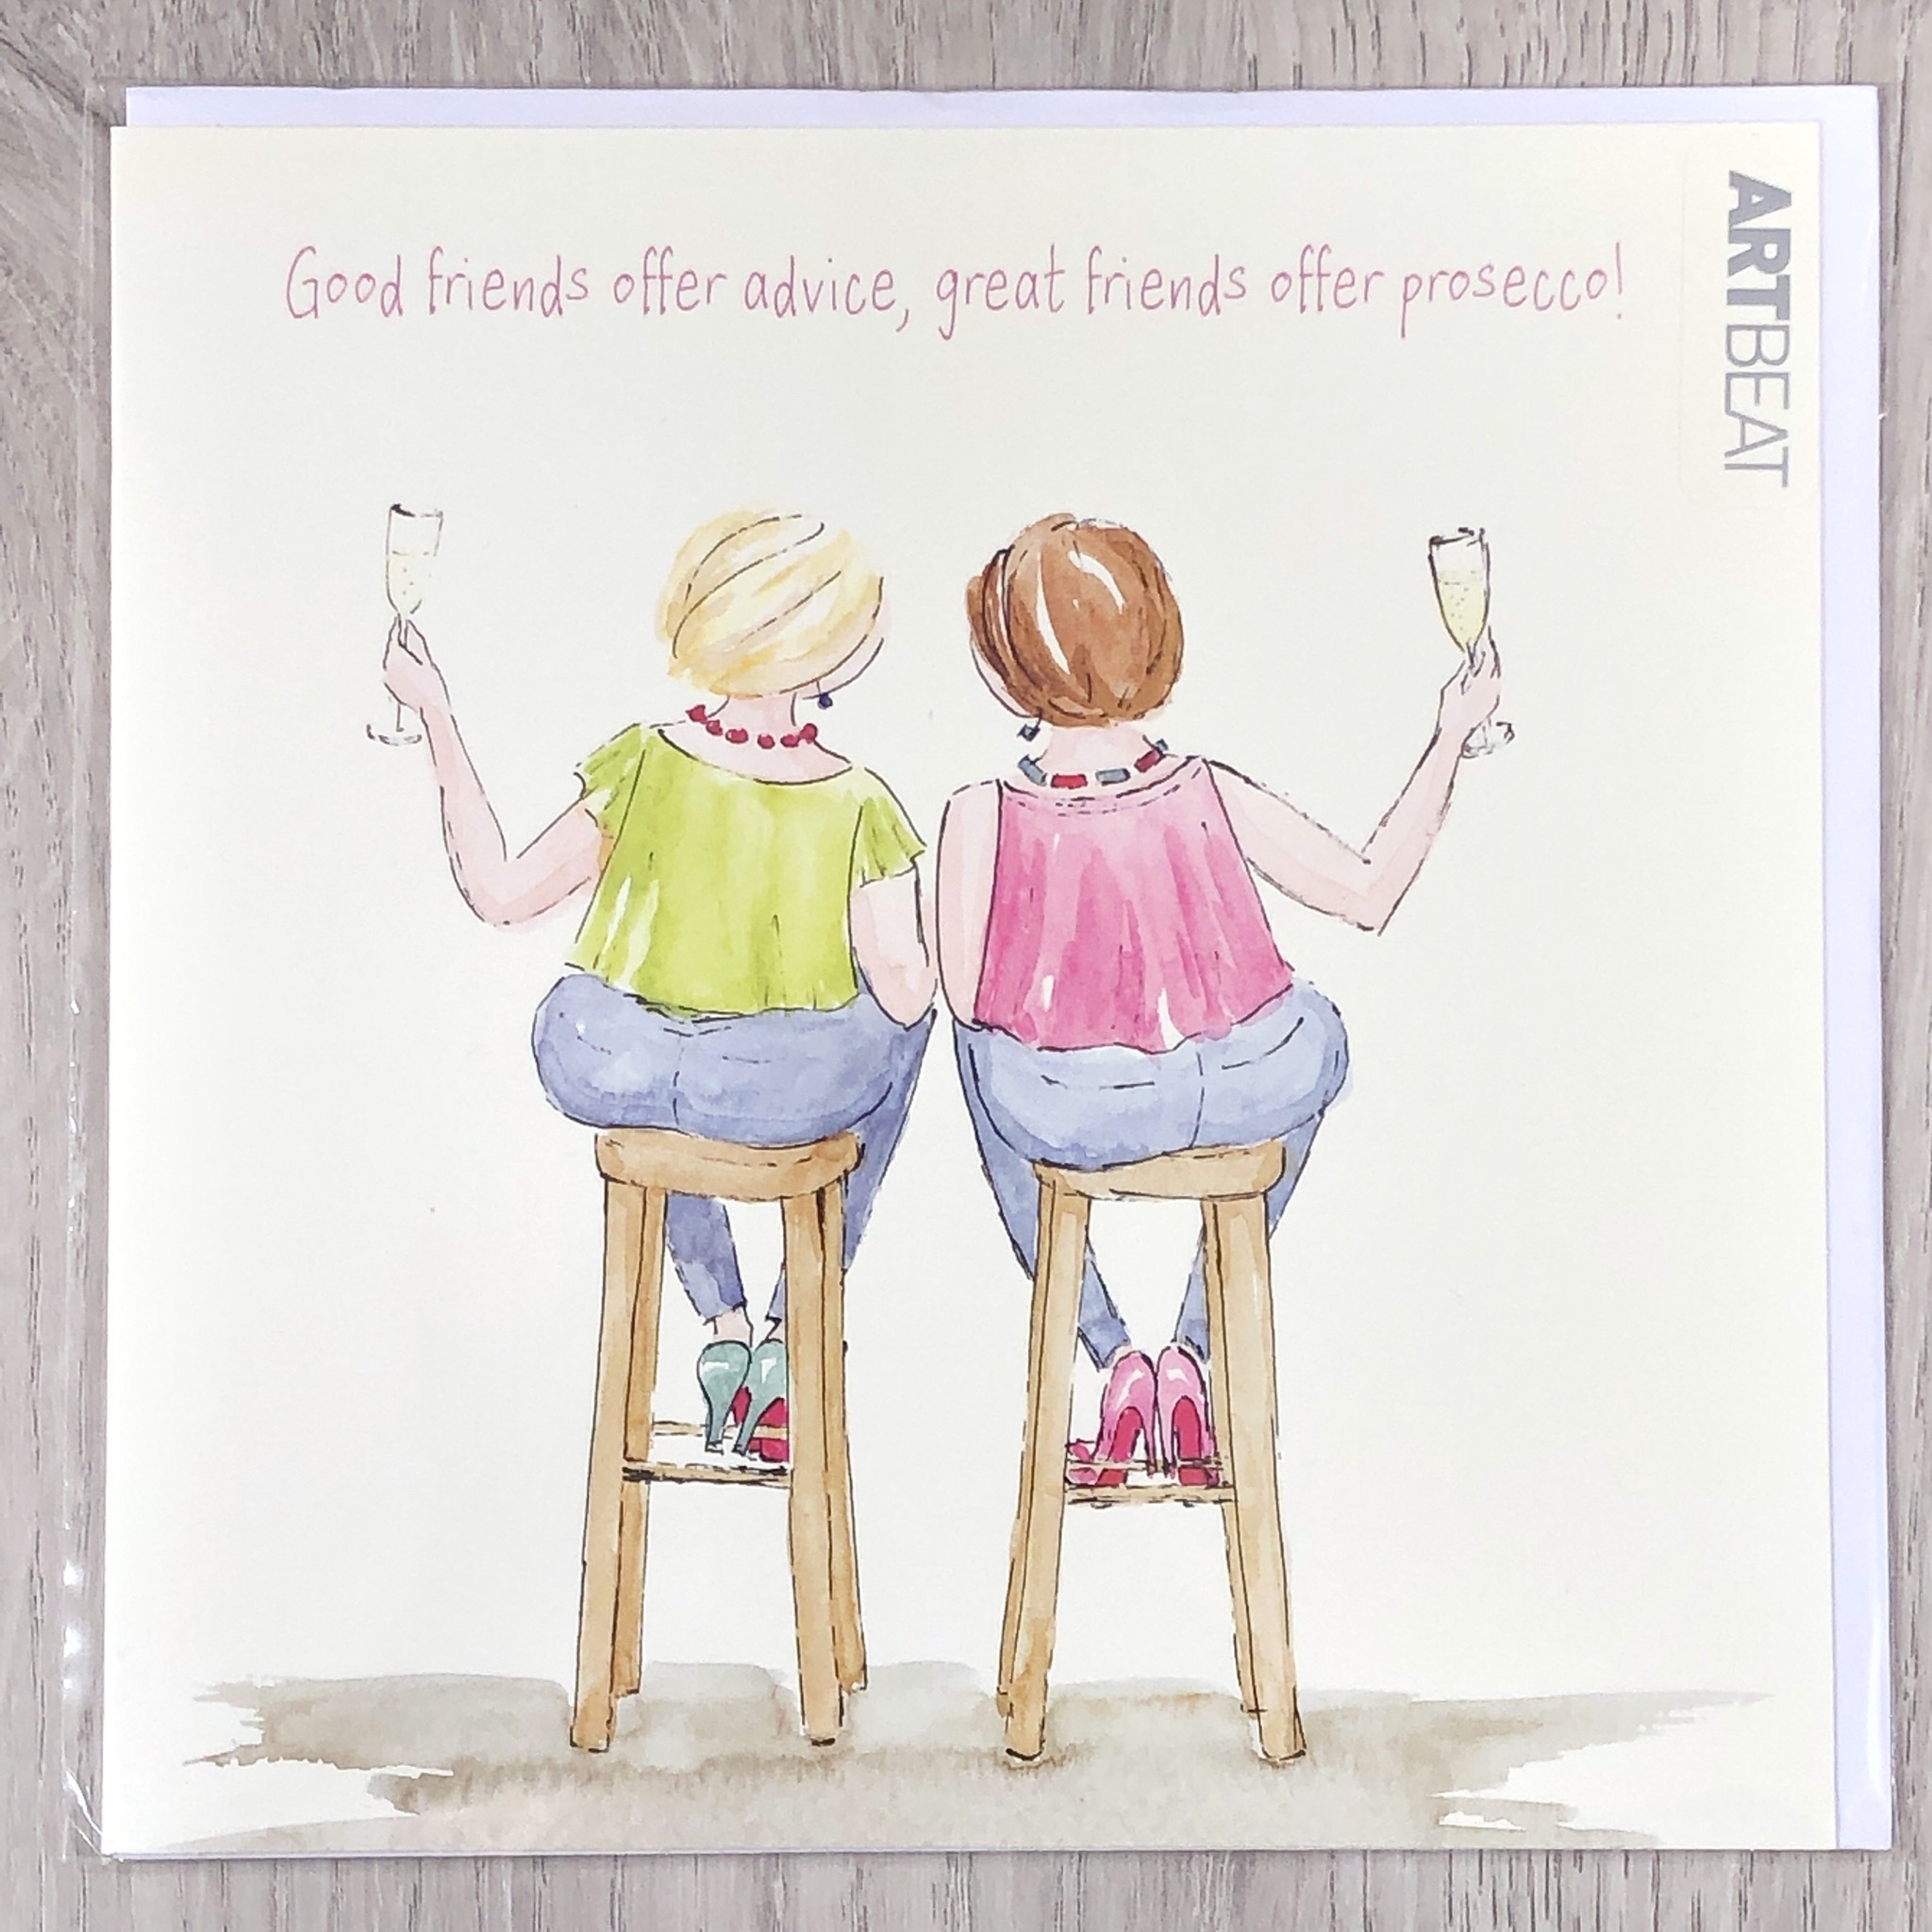 card - good friends offer advice, great friends offer Prosecco